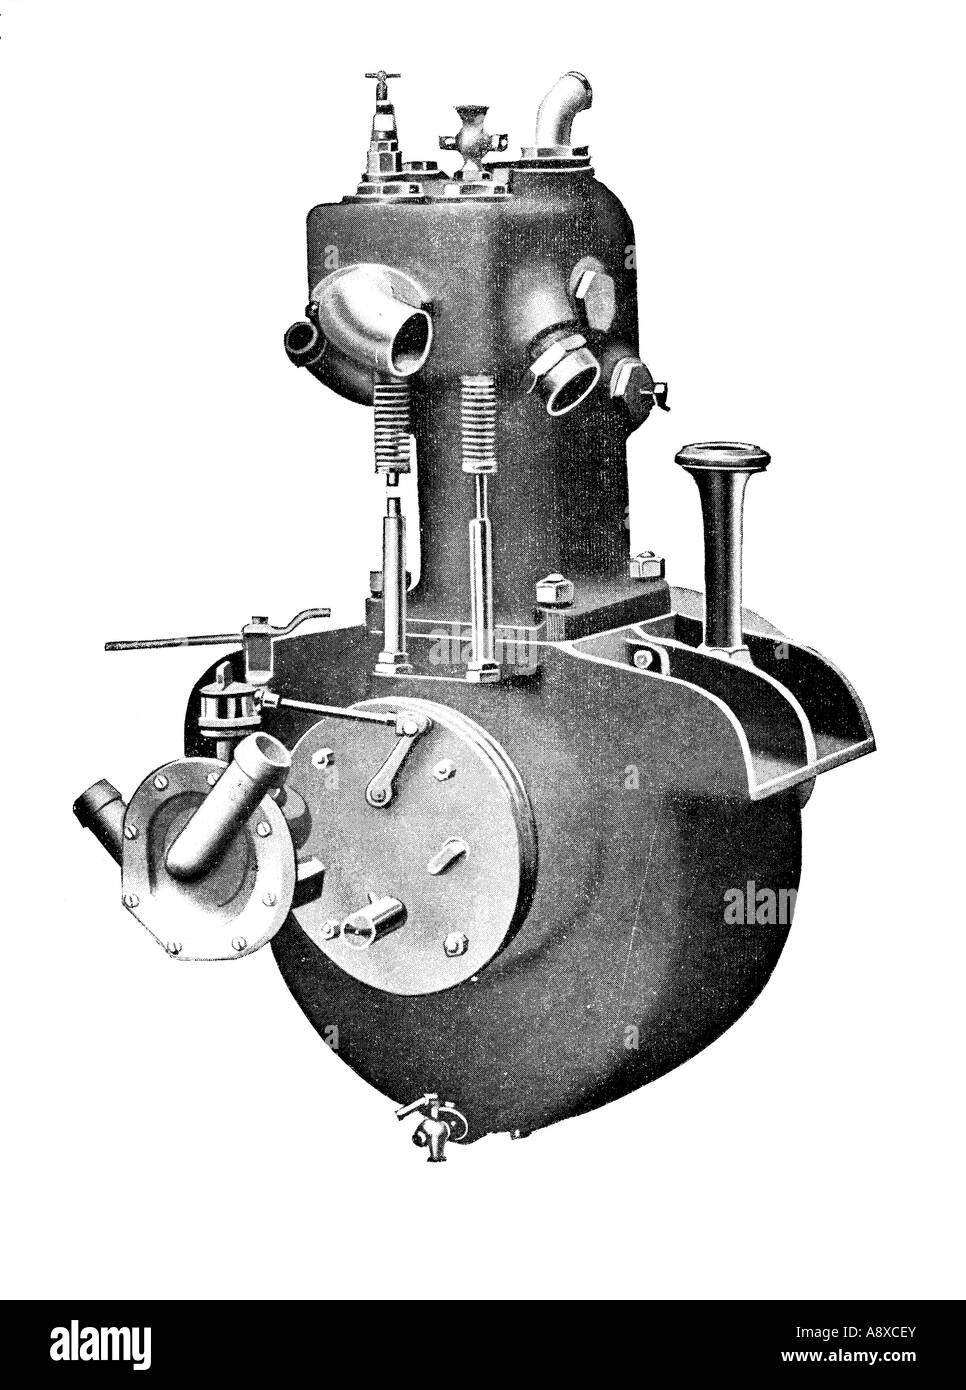 Car Engine Diagram Stock Photos Images Steam Darracq Single Cylinder Petrol Image